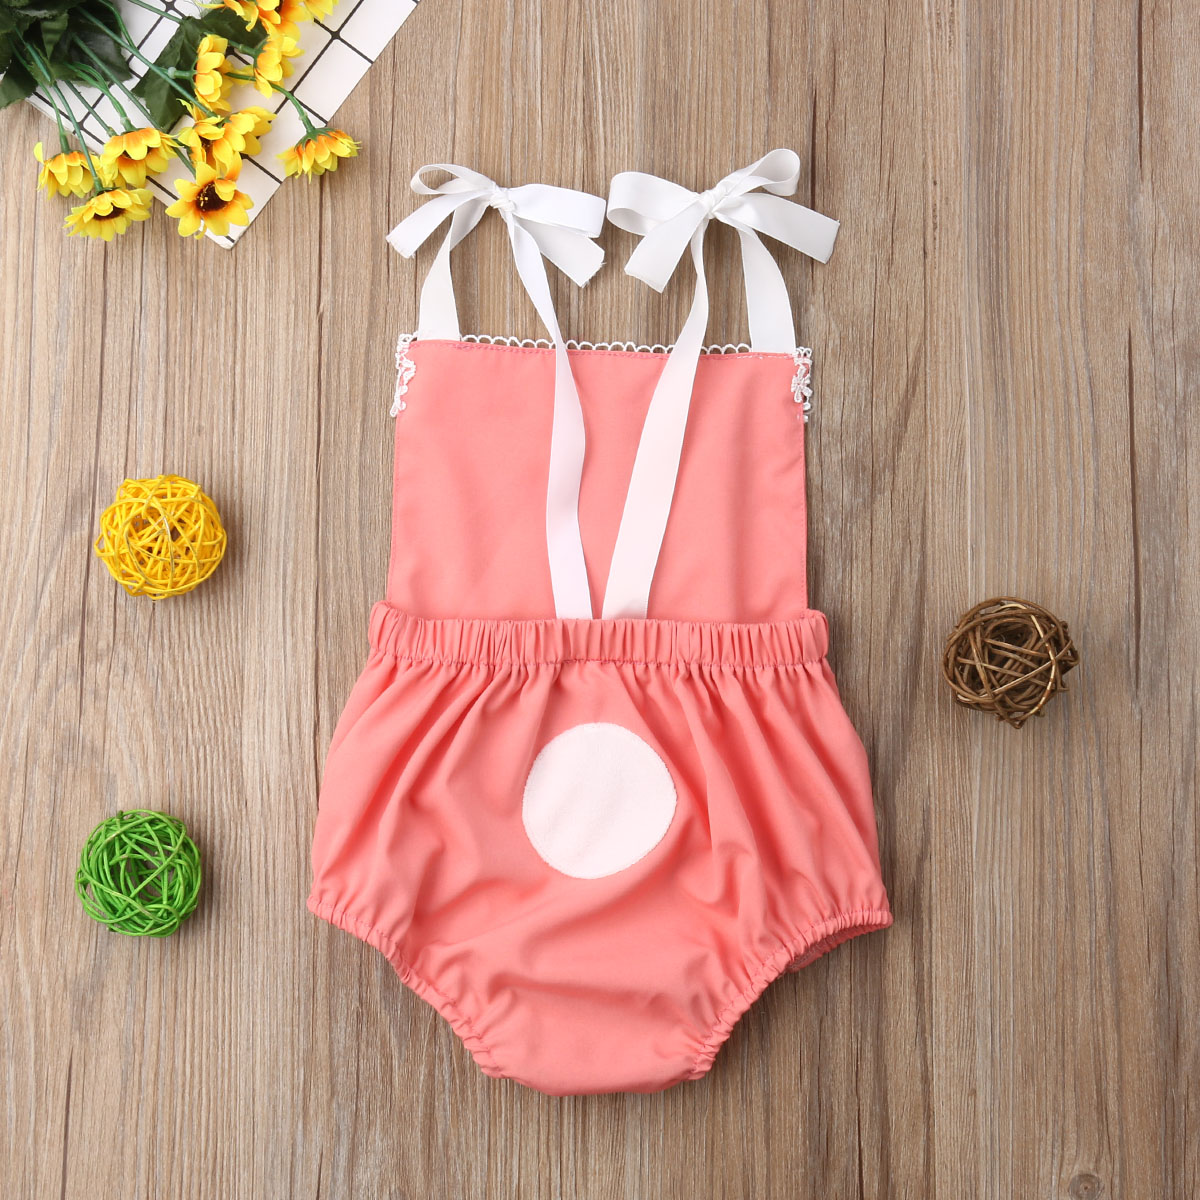 Rabbit Newborn Easter Babygirl Jumpsuit Outfits Toddler Clothes 3 6 9 12 18 Month-in Rompers